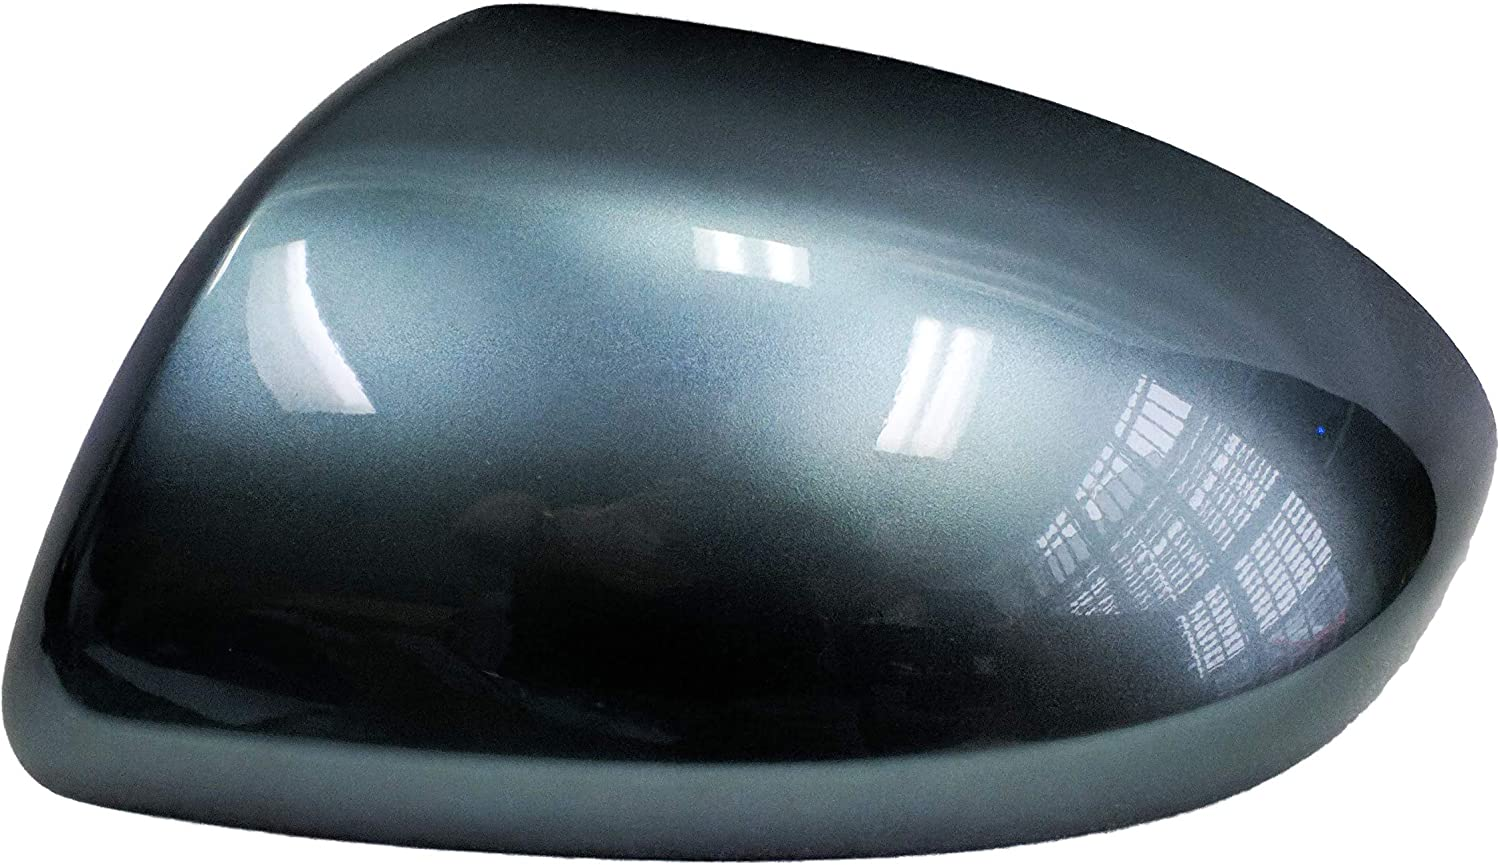 2010-2011 Mazda 3 Right Passenger Side View Mirror Cover Cap OEM GS1E691N1A23